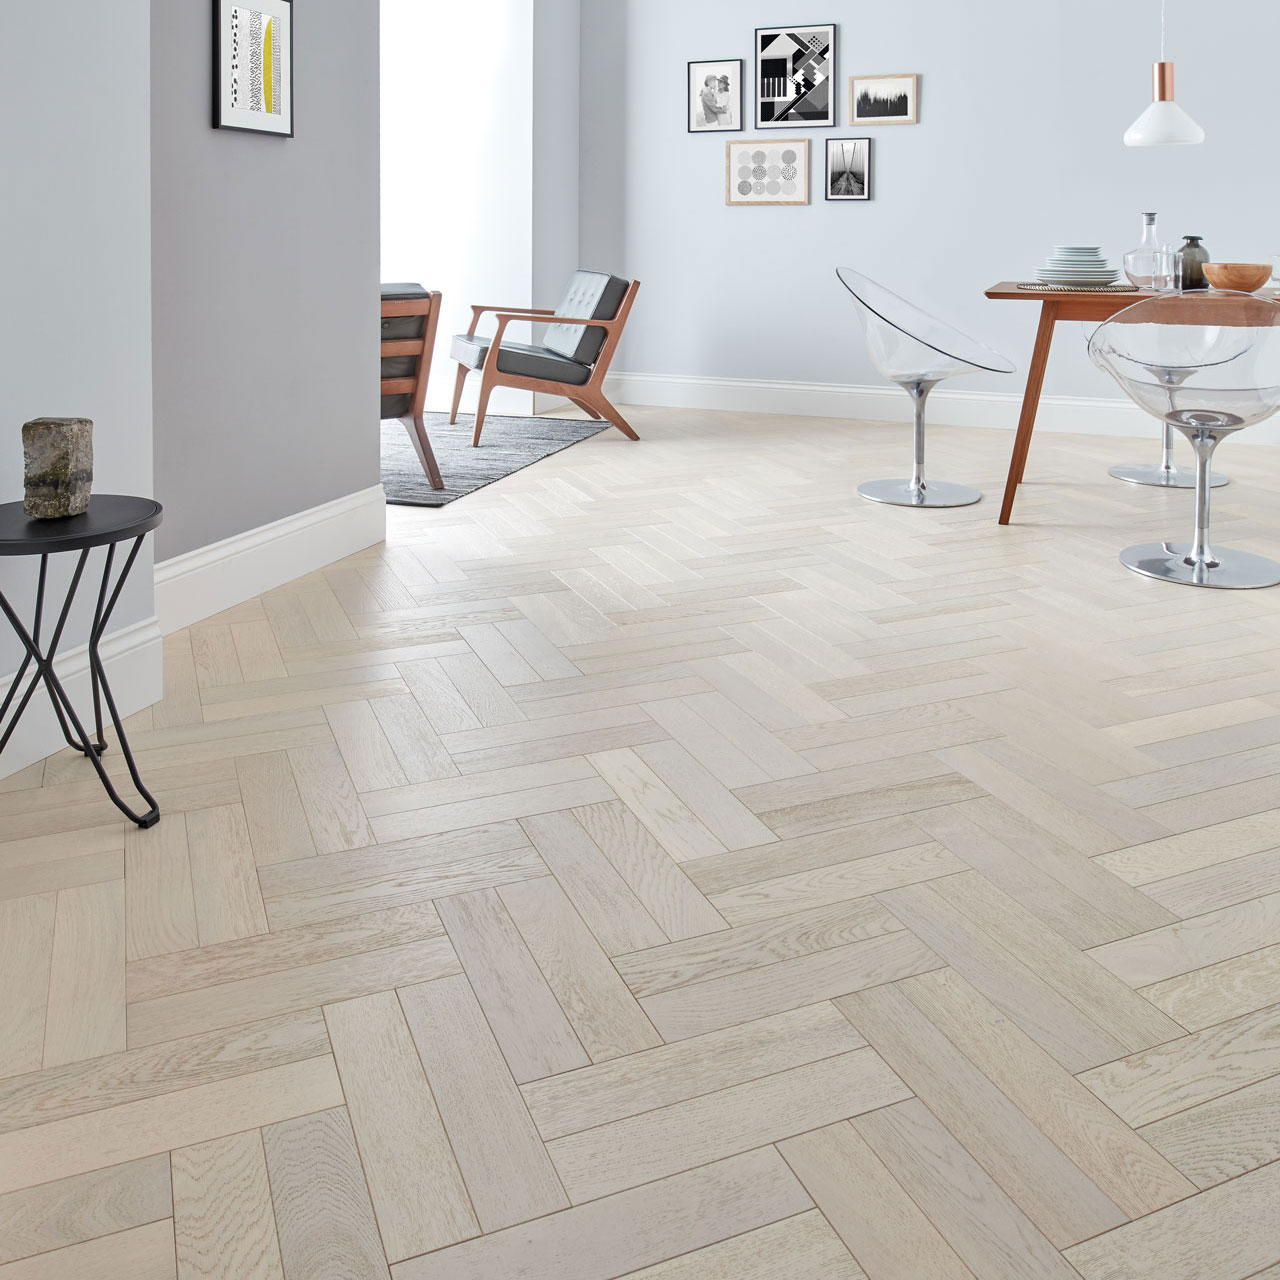 Create an Interesting Angle With Vinyl Flooring